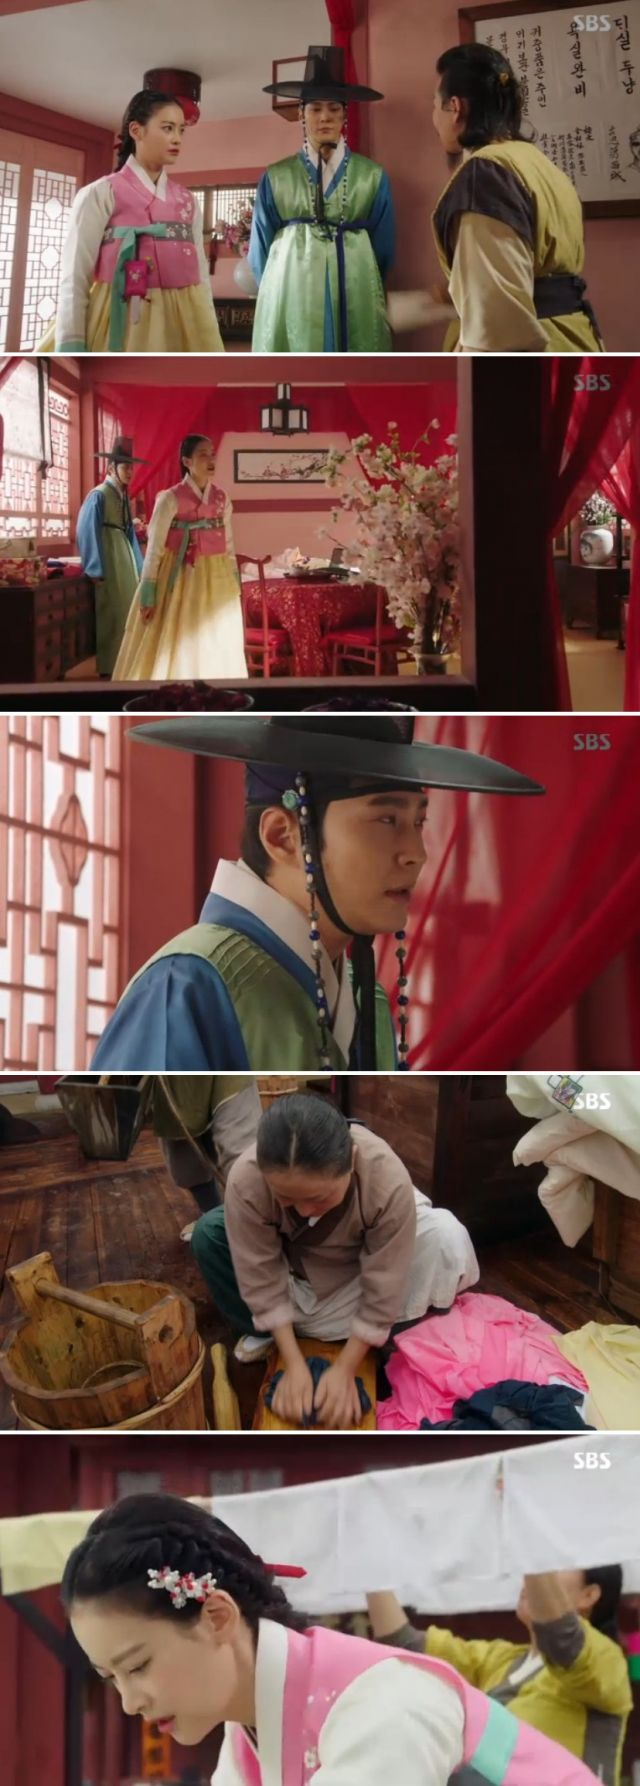 [Spoiler] Added episode 4 captures for the Korean drama 'My Sassy Girl - Drama'